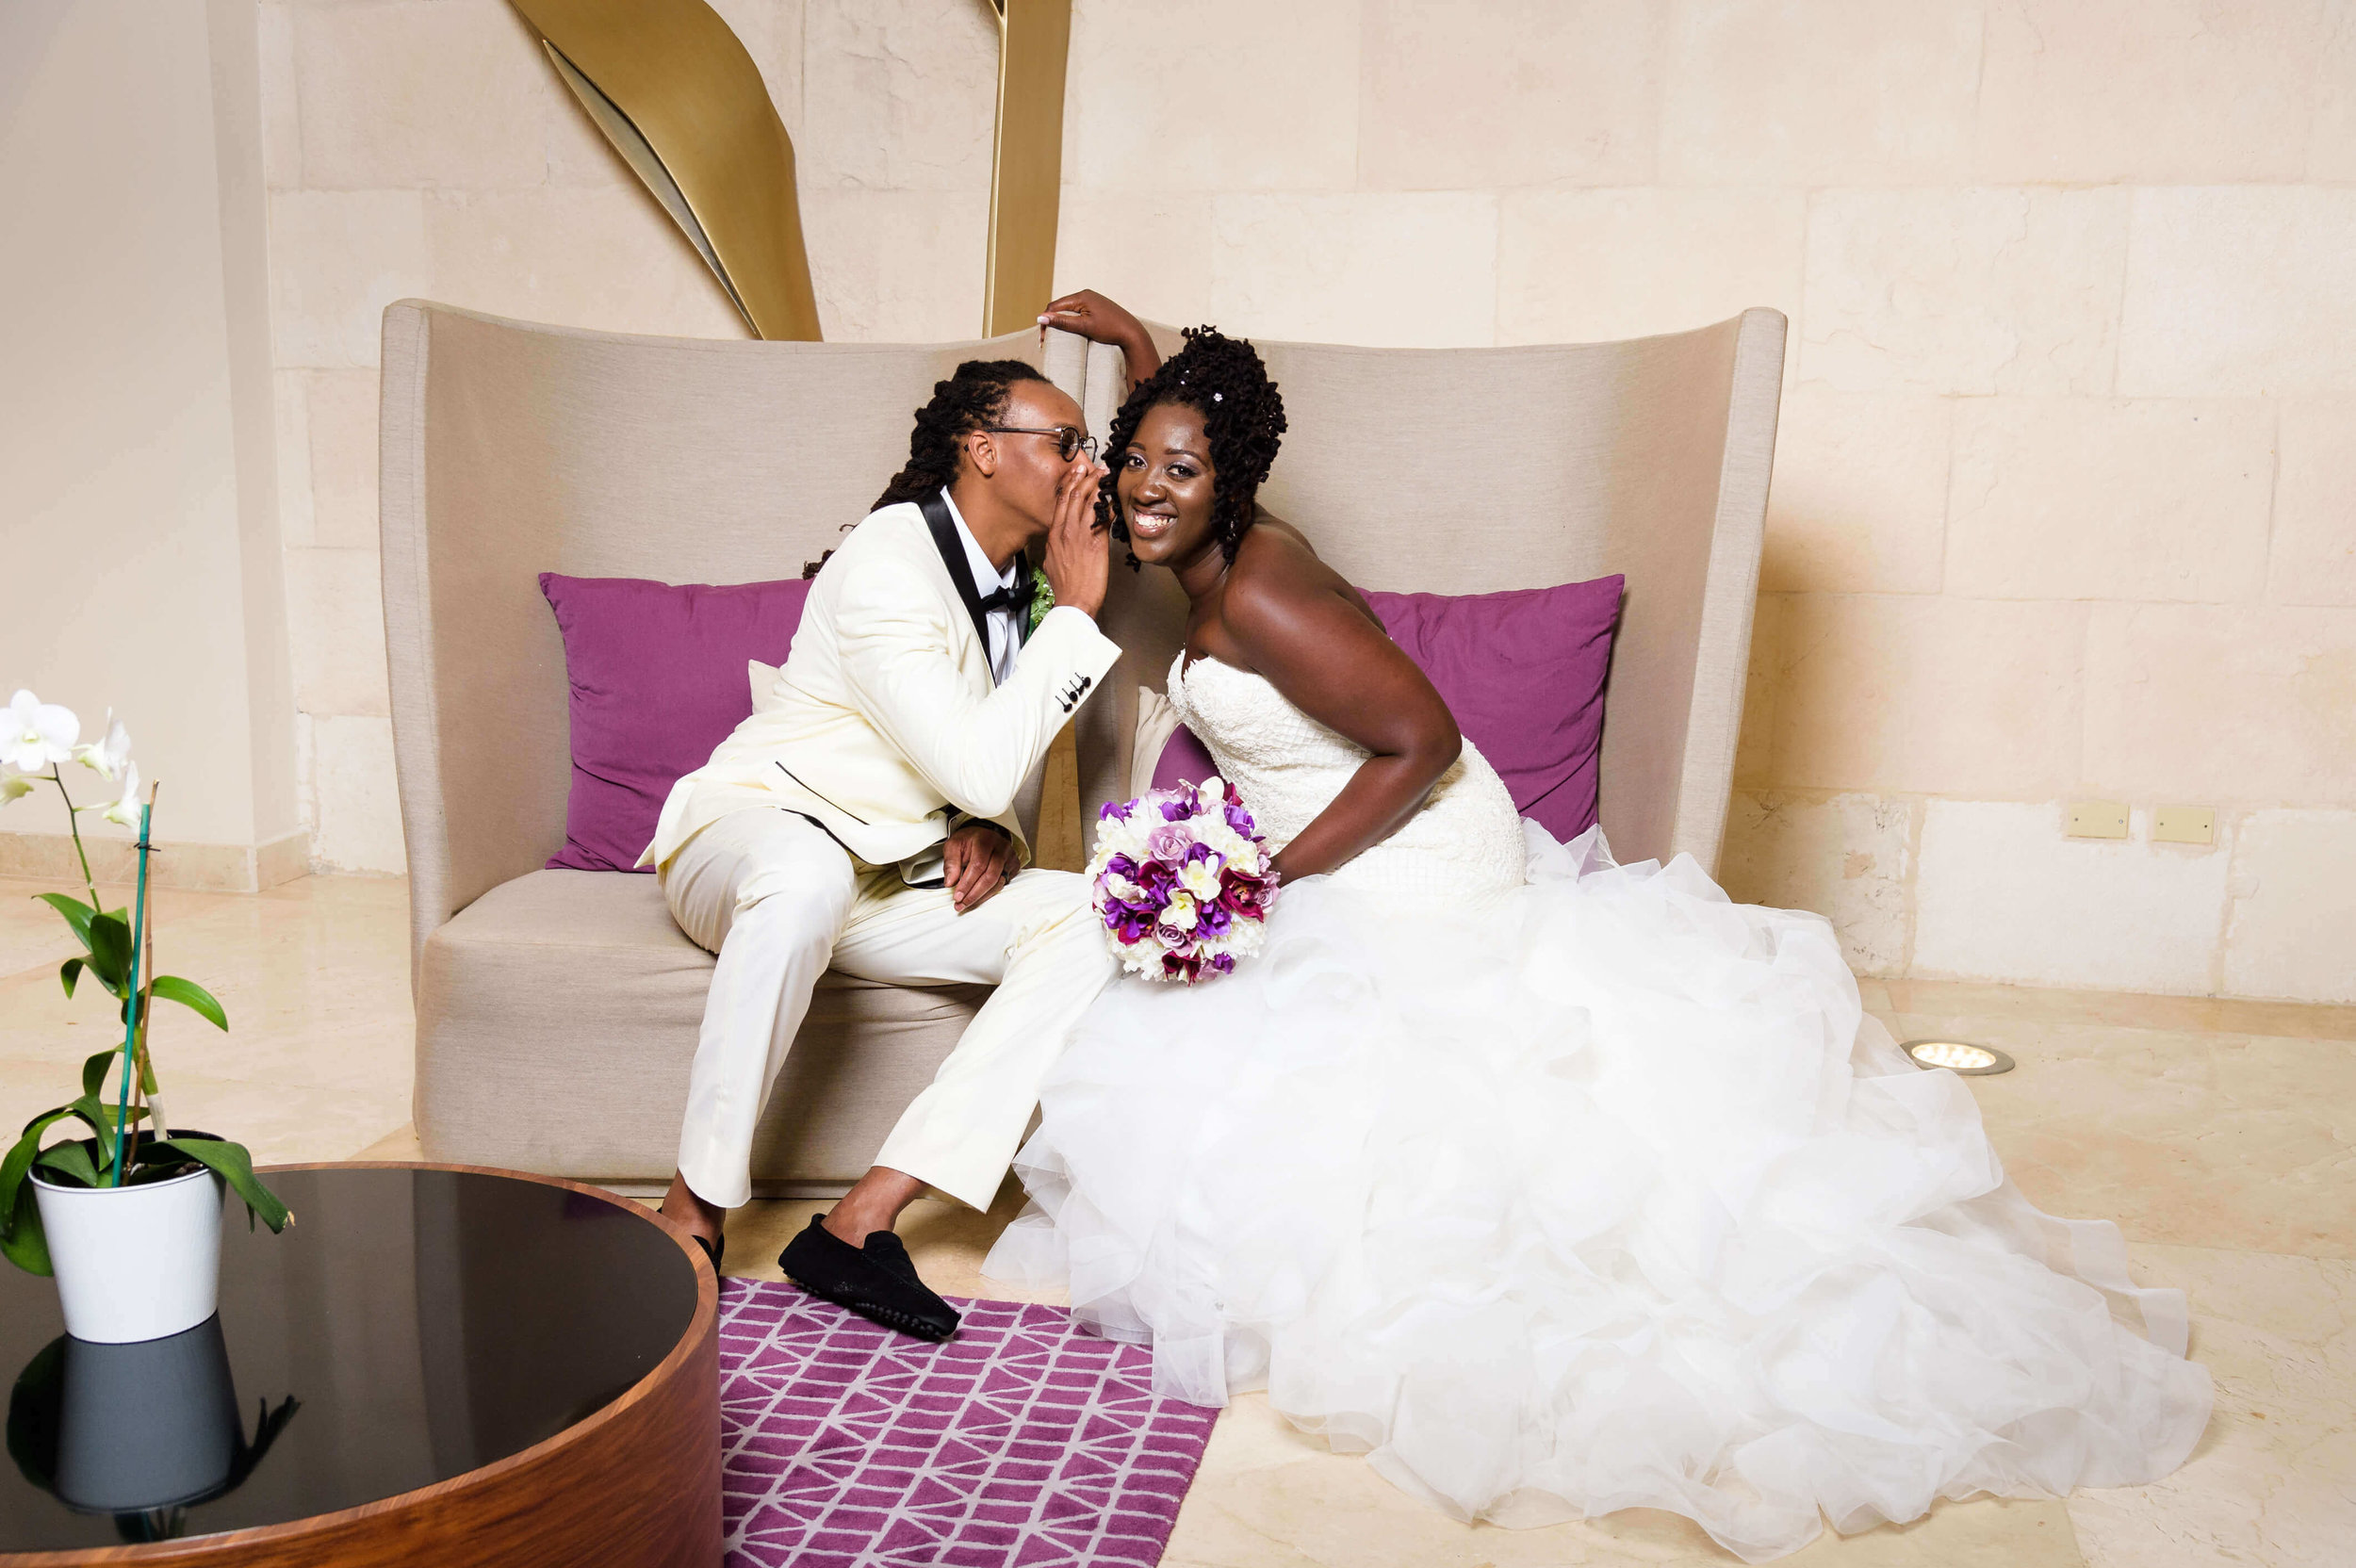 jamellah-how-to-plan-a-destination-wedding-in-montego-bay-jamaica-royalton-blue-waters-black-destination-bride-destiland-desti-guide-to-destination-weddings-couple-lobby-wedding-1.jpg